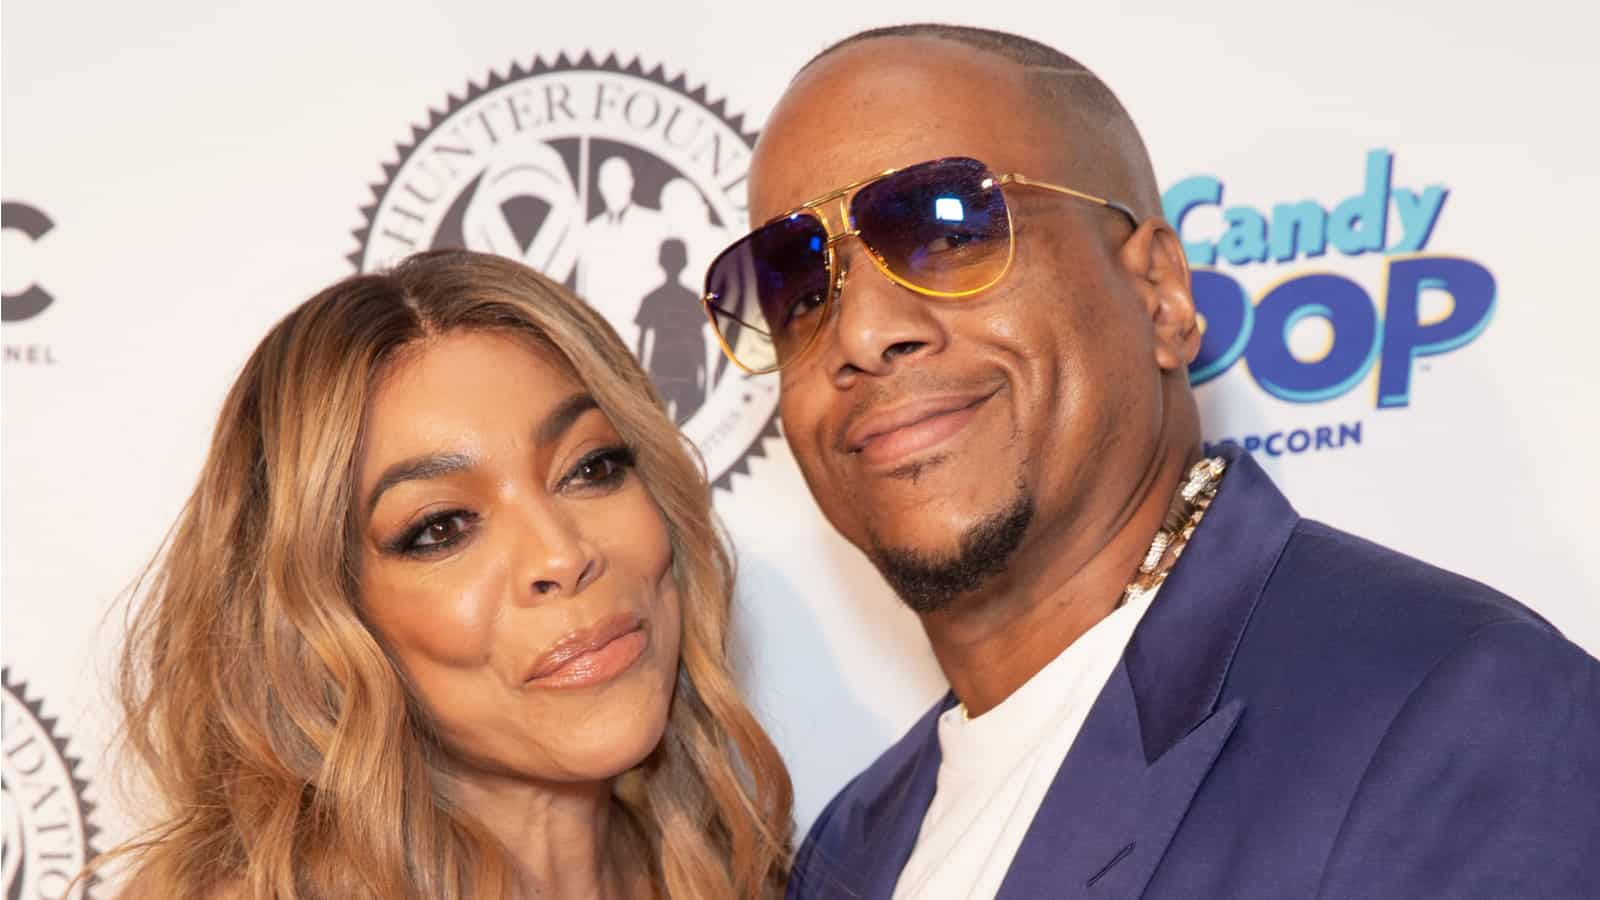 kevin-hunter-reportedly-furious-wendy-williams-has-been-talking-about-him-and-his-mistress-on-her-talk-show